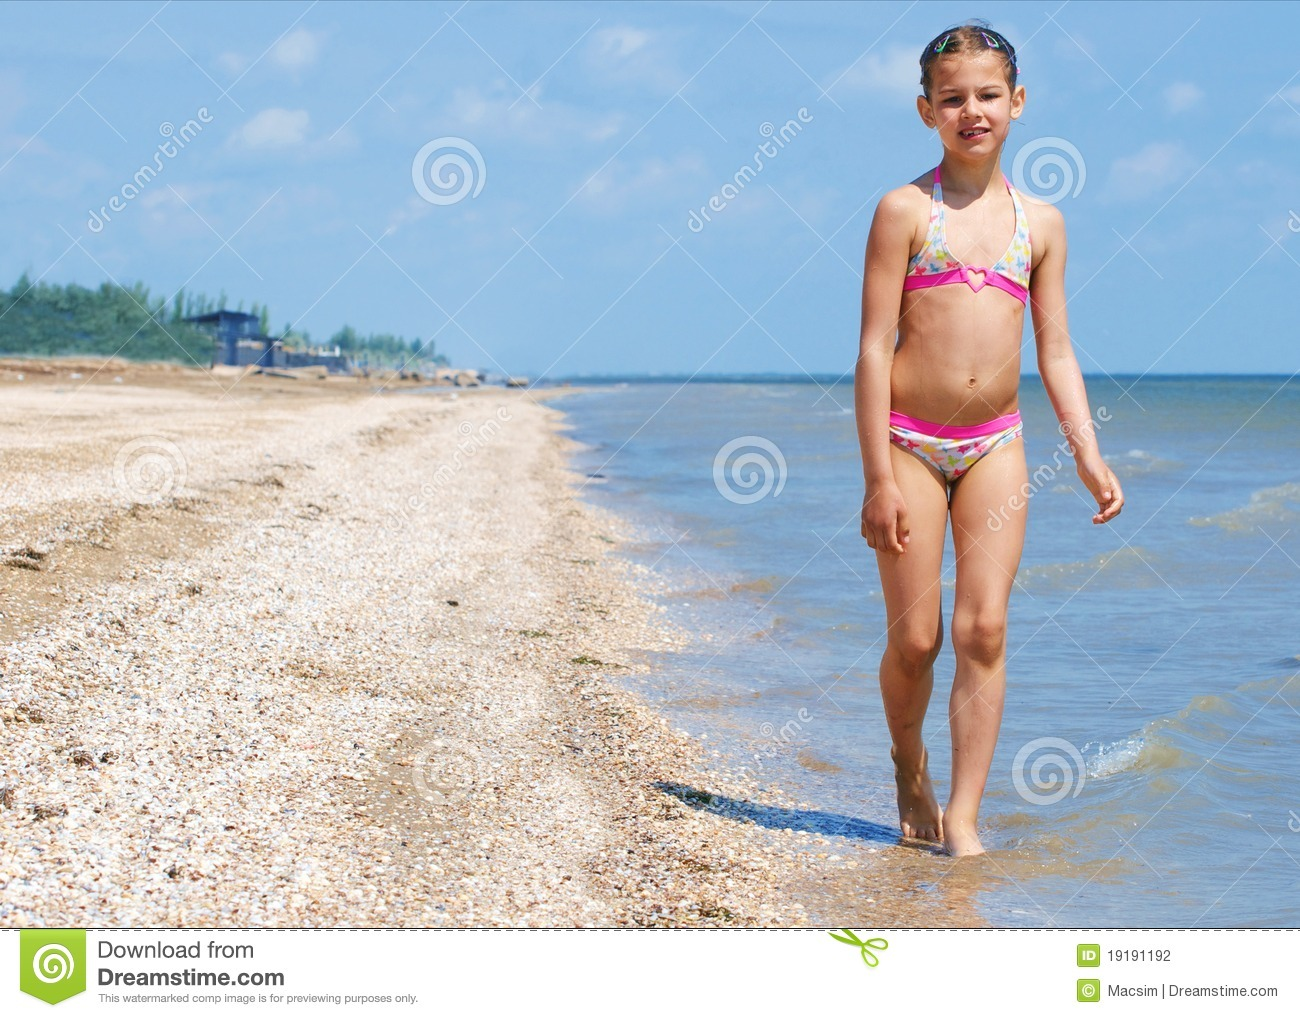 Very young teen girls beach